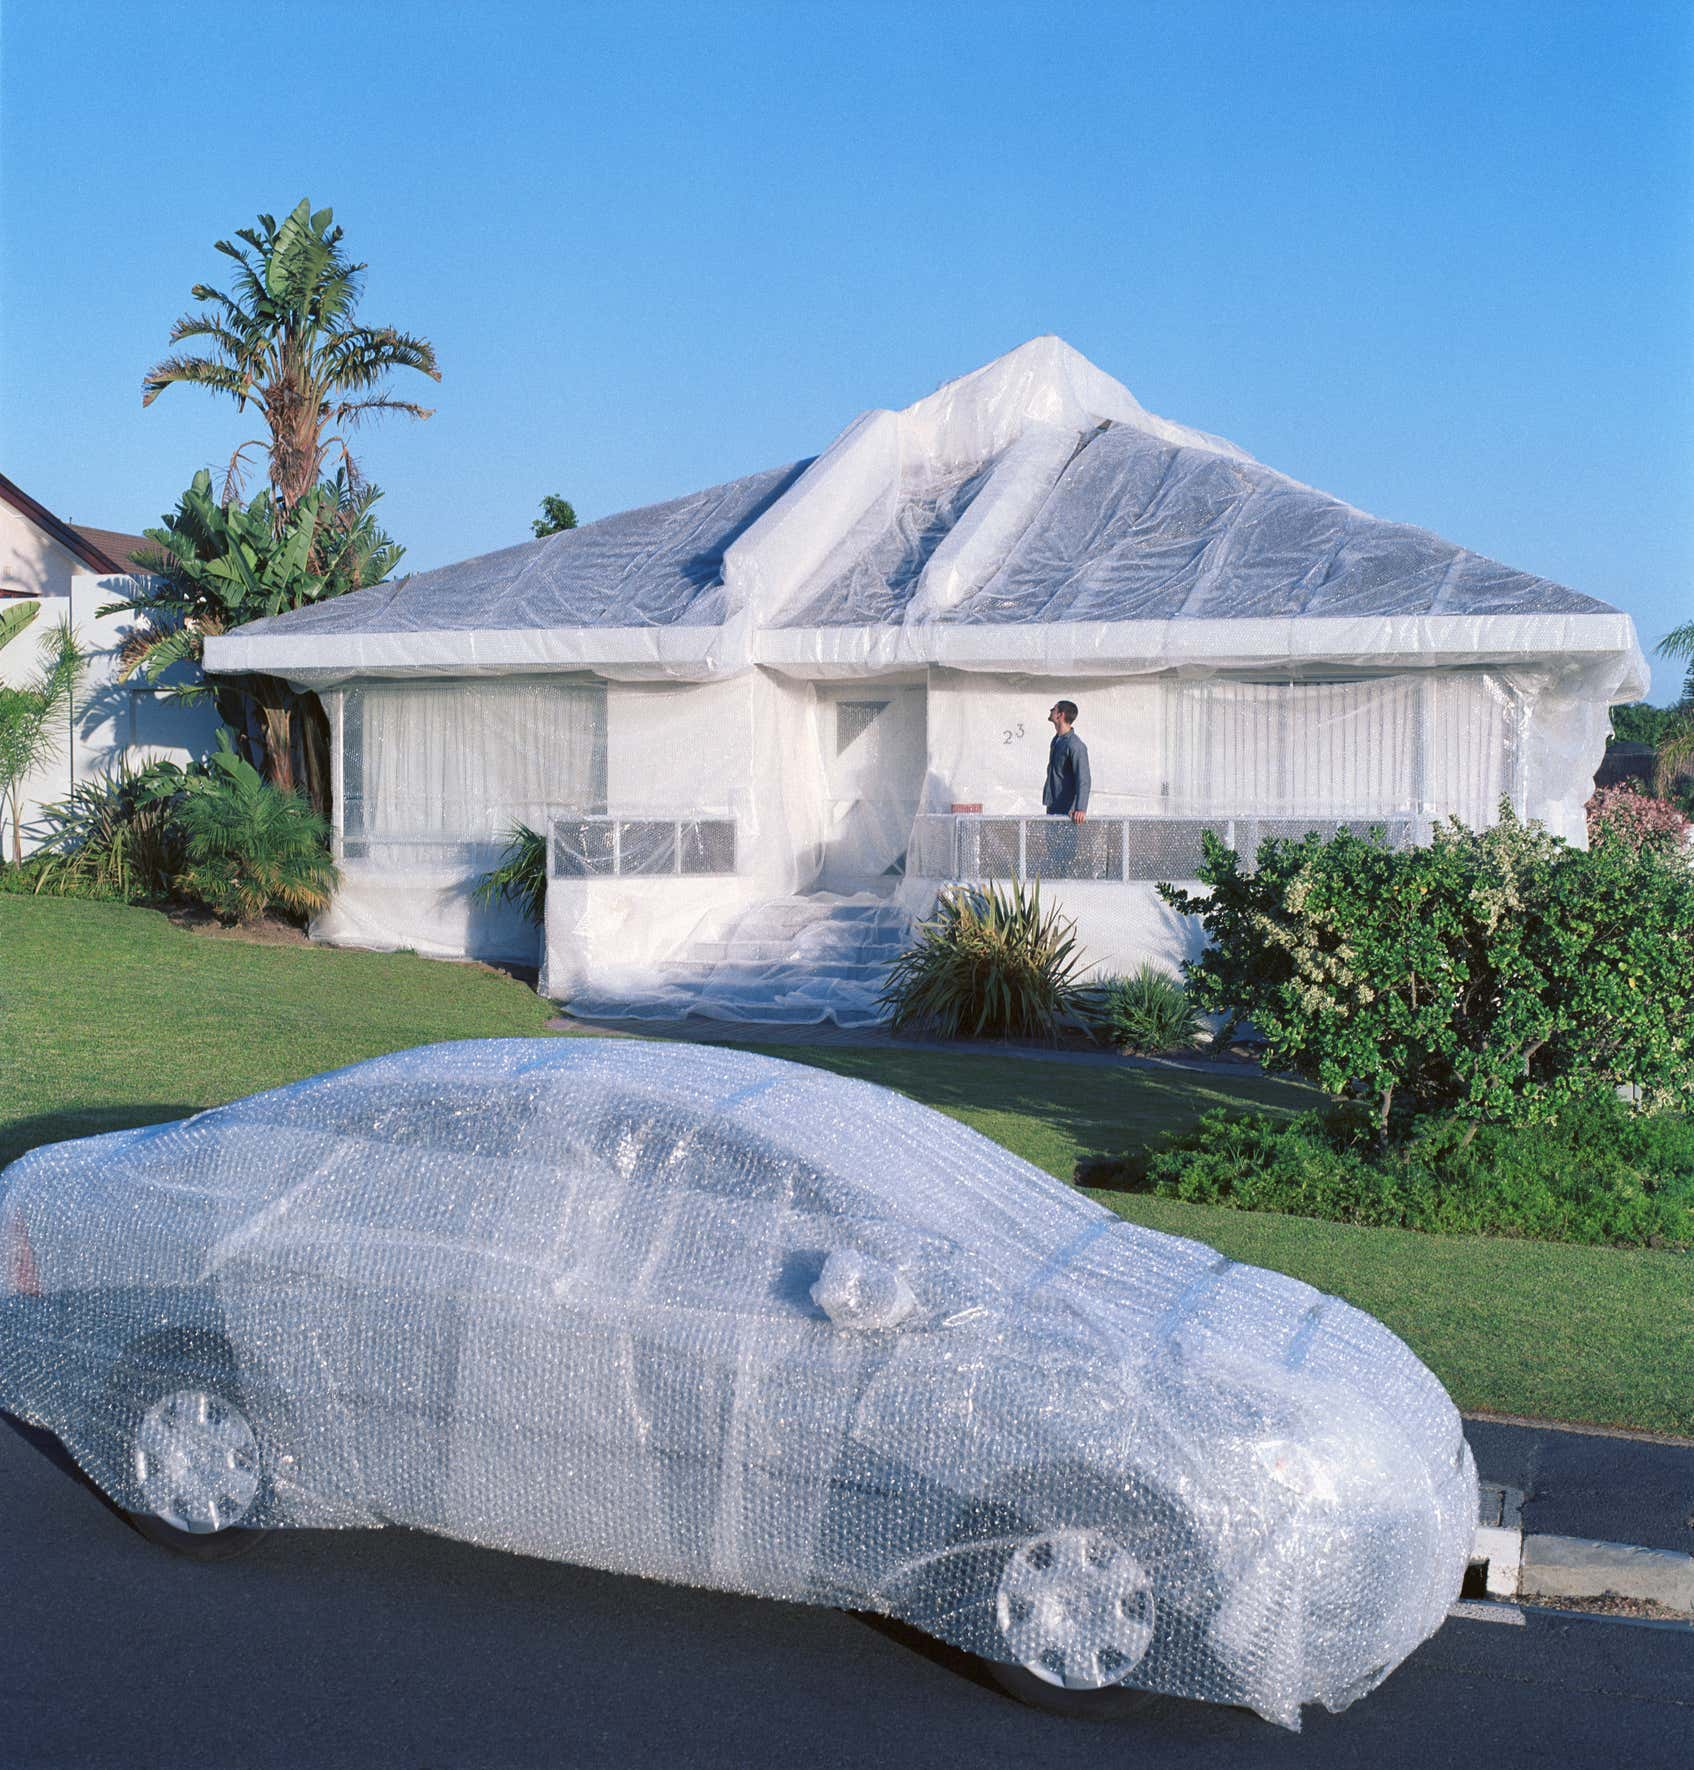 Bubble wrapped car and house.